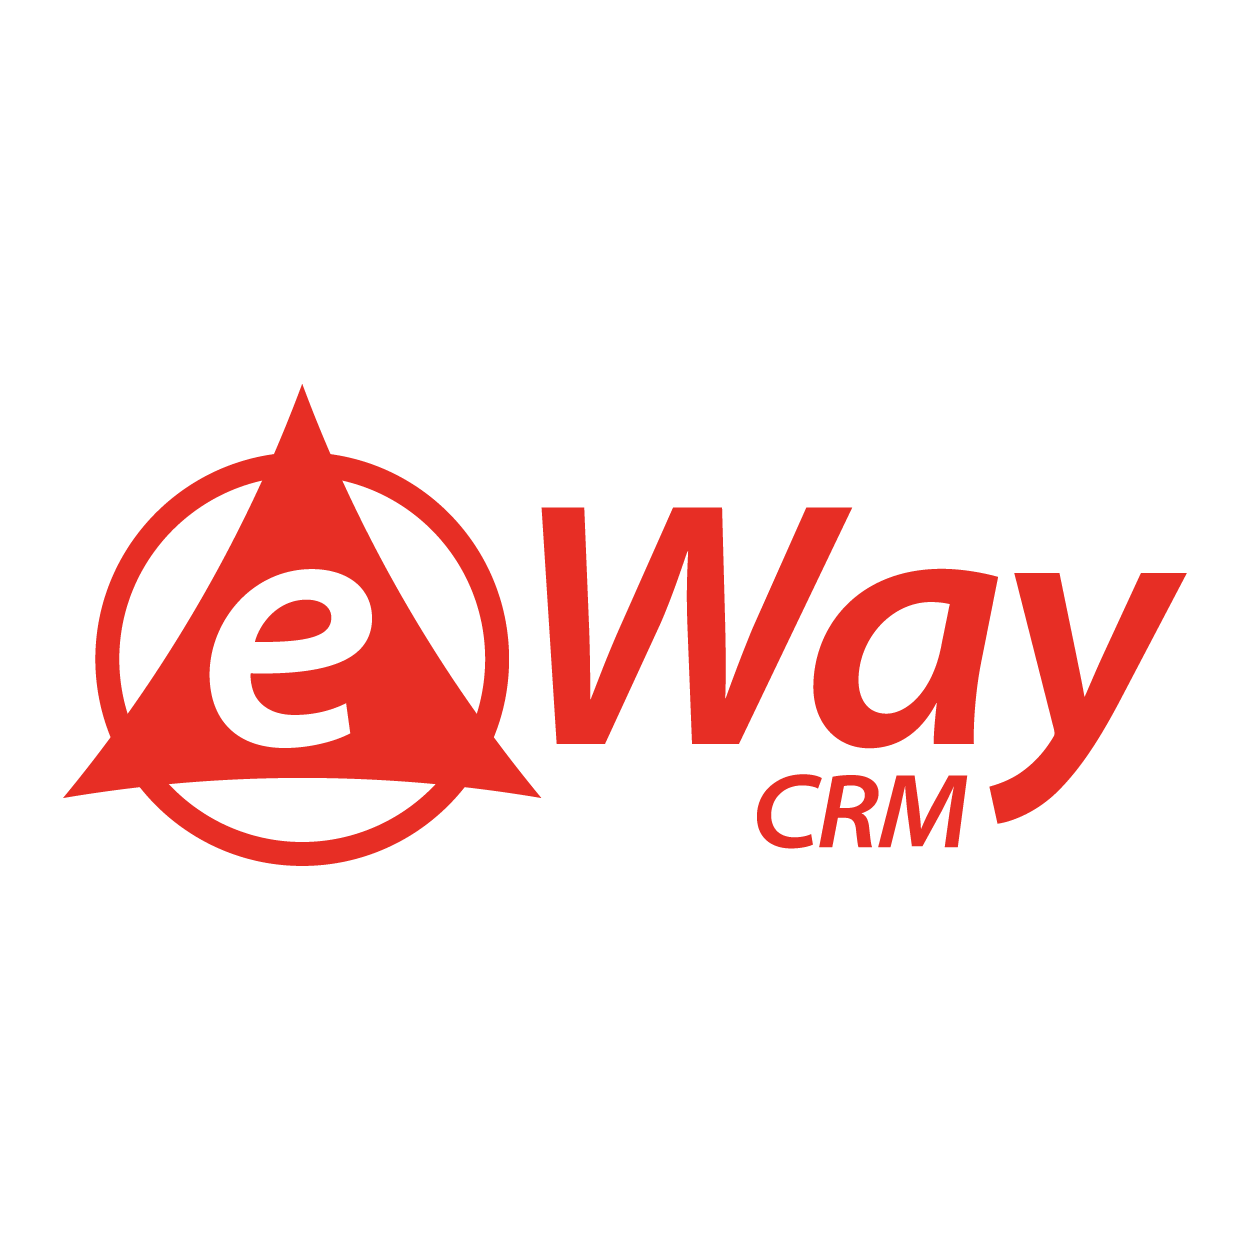 Logotipo do eWay-CRM